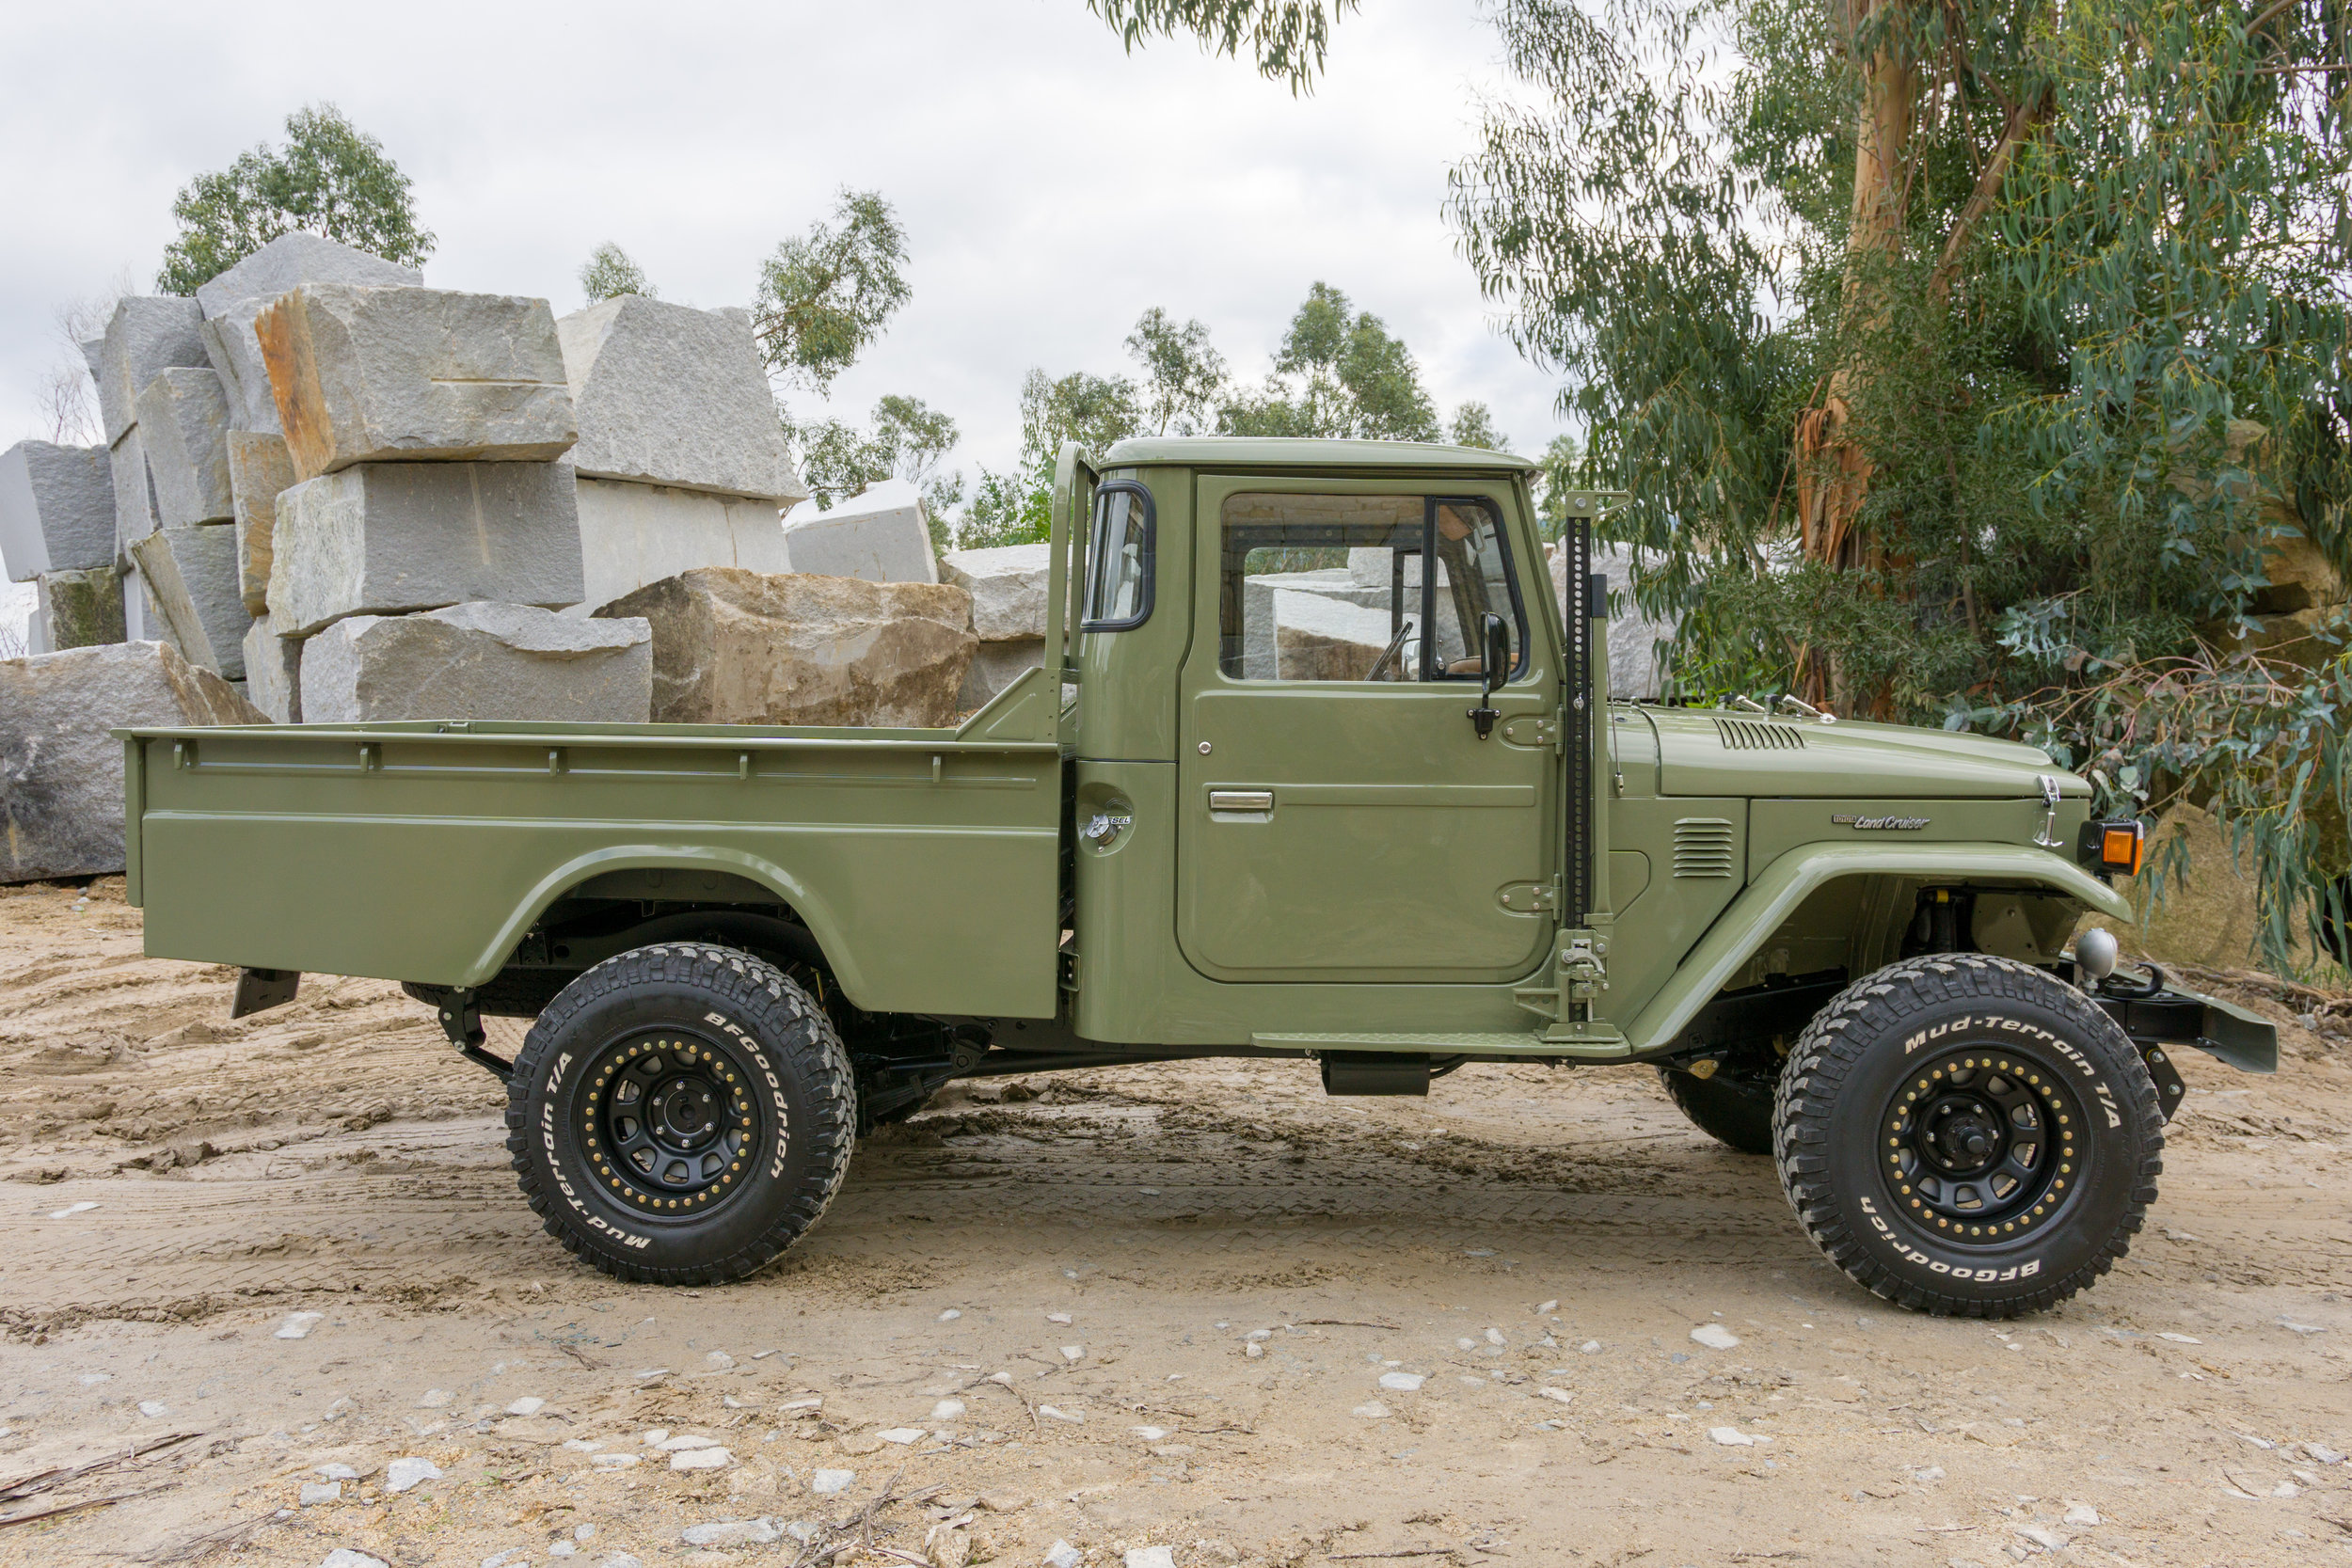 LegacyOverland_1978_ToyotaLandCruiser_HJ45_pick-up_quarry_8.jpg